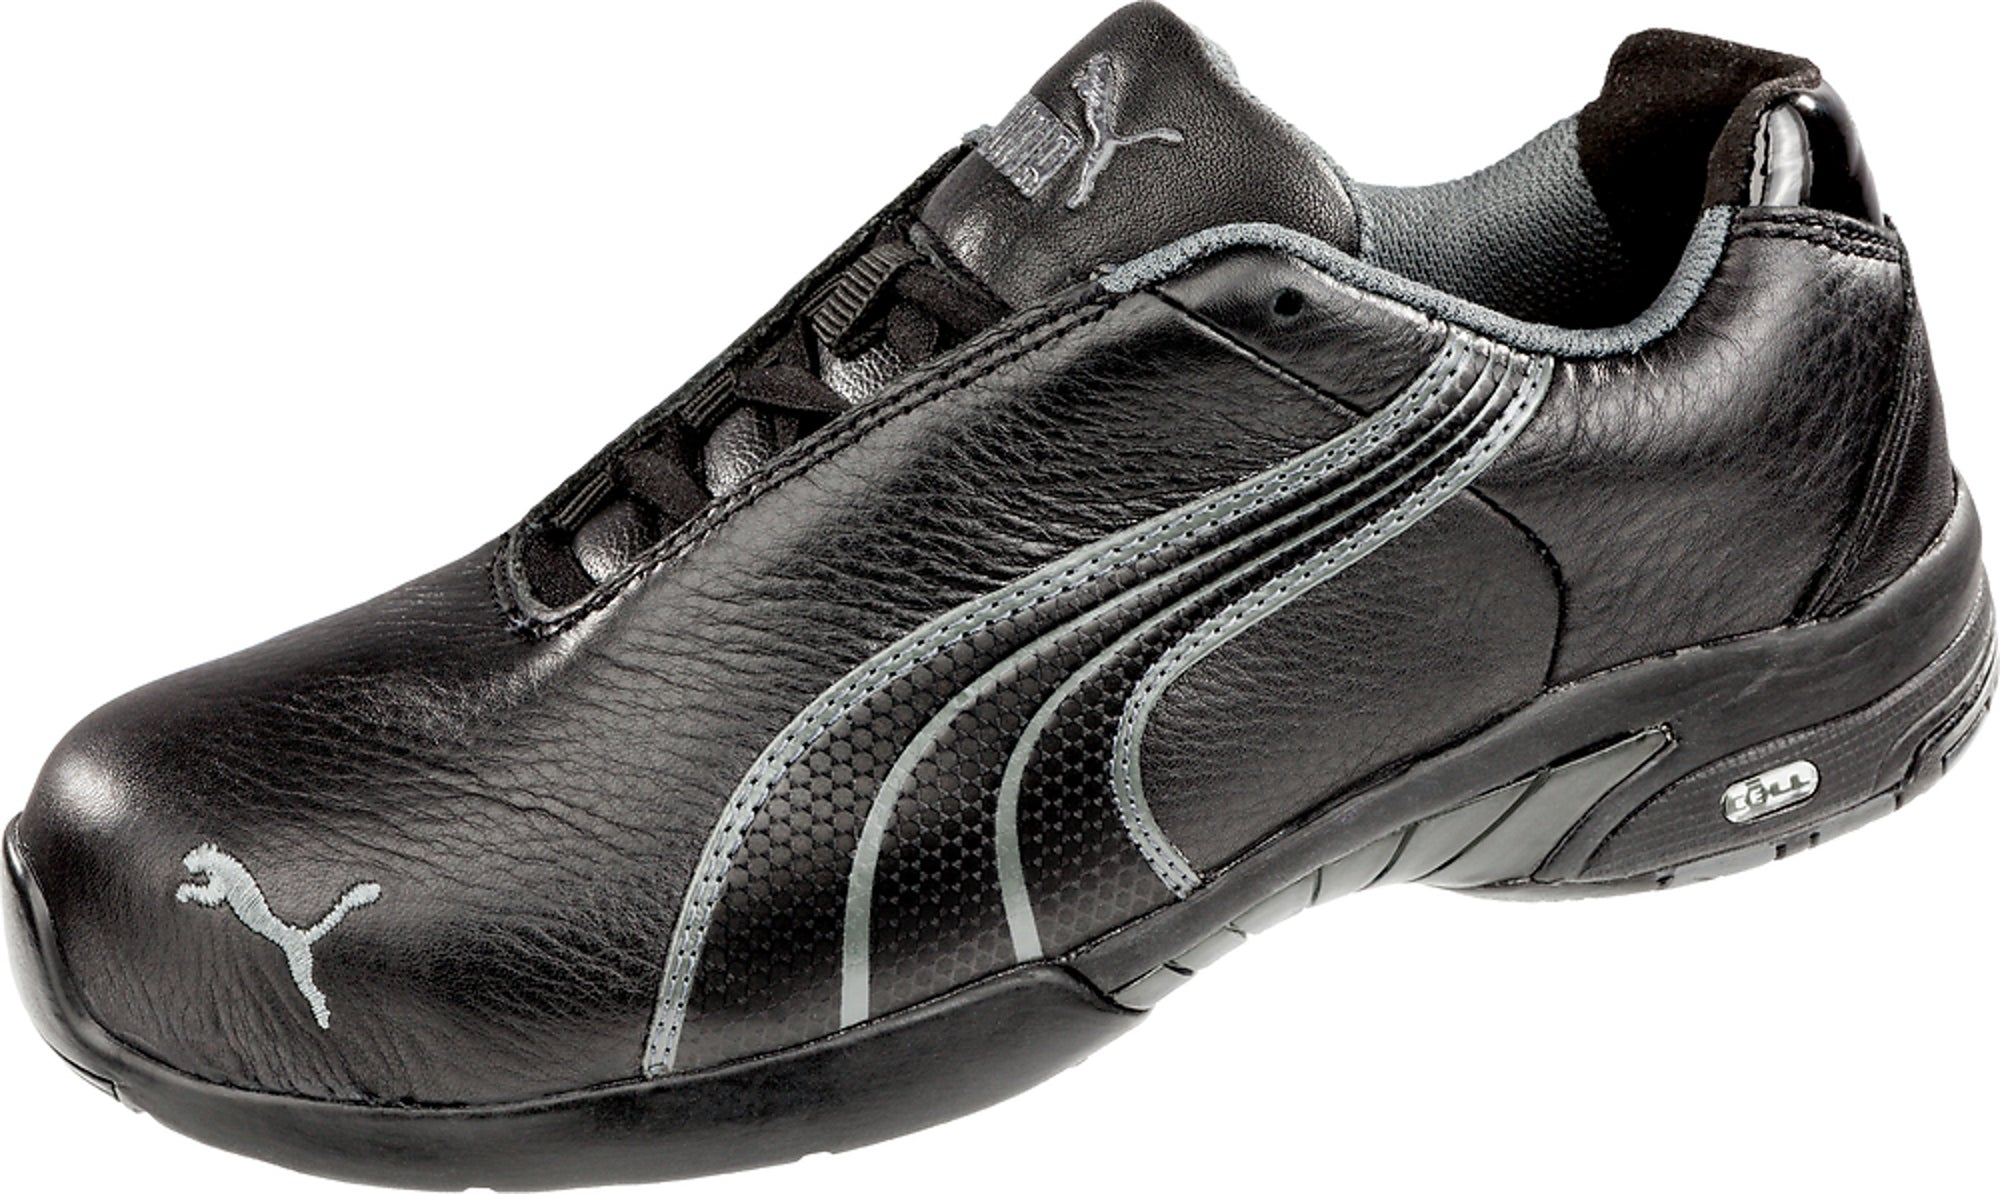 Puma Esd Shoes Top Sellers, UP TO 69% OFF